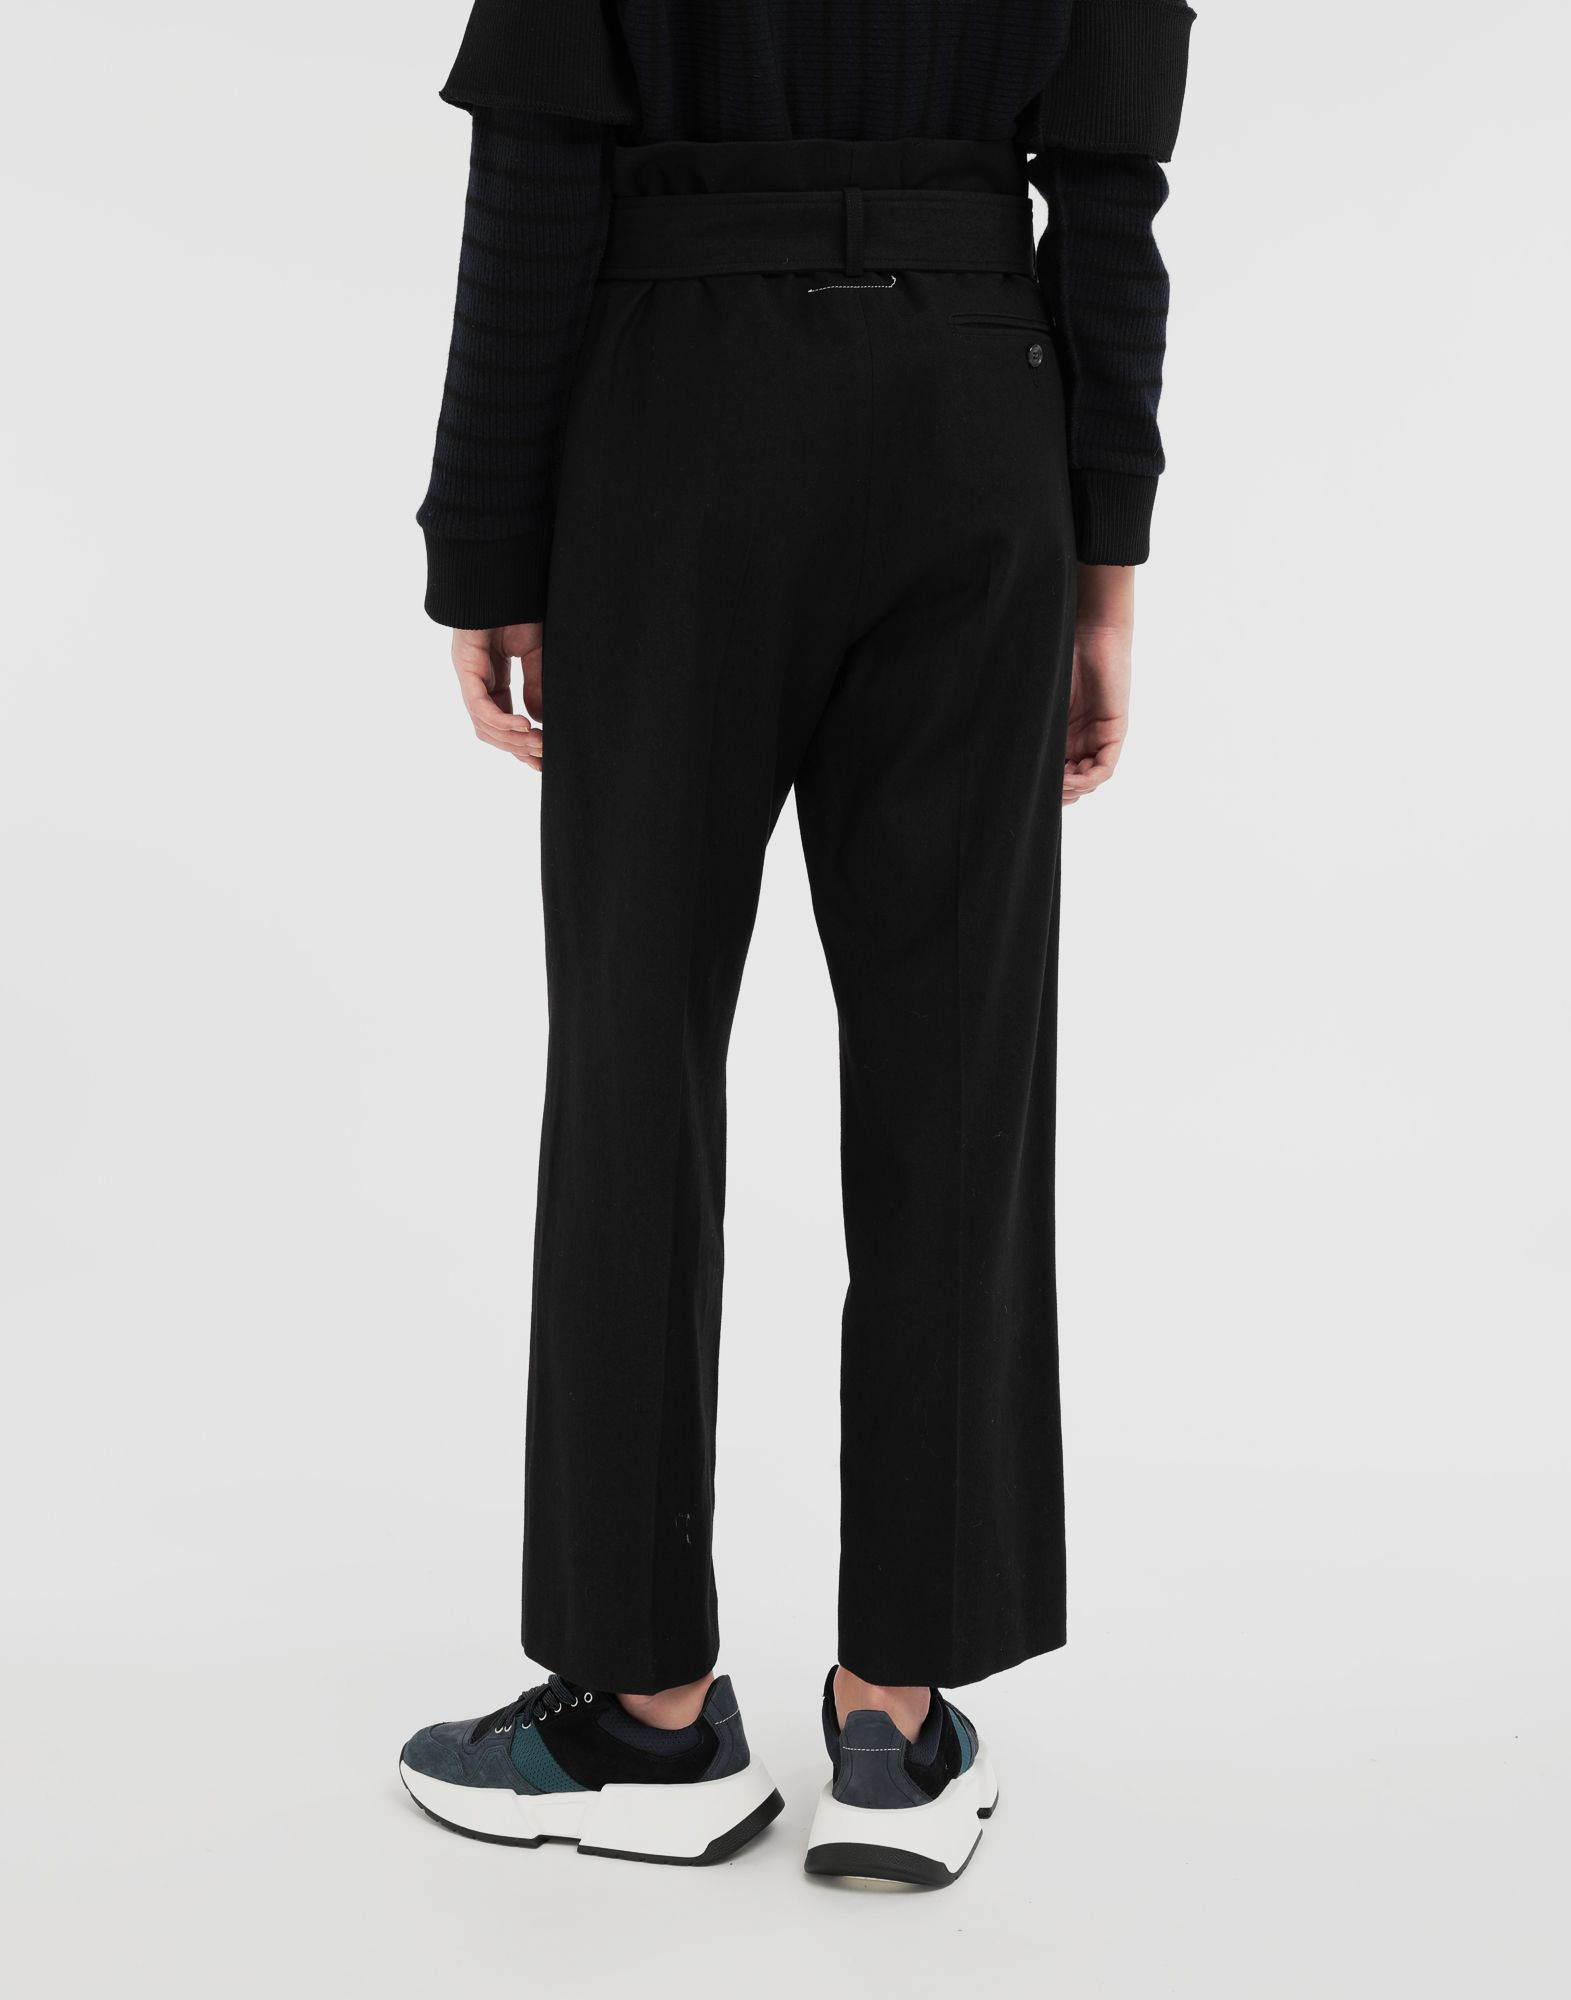 MM6 MAISON MARGIELA Tailored trousers Casual pants Woman e